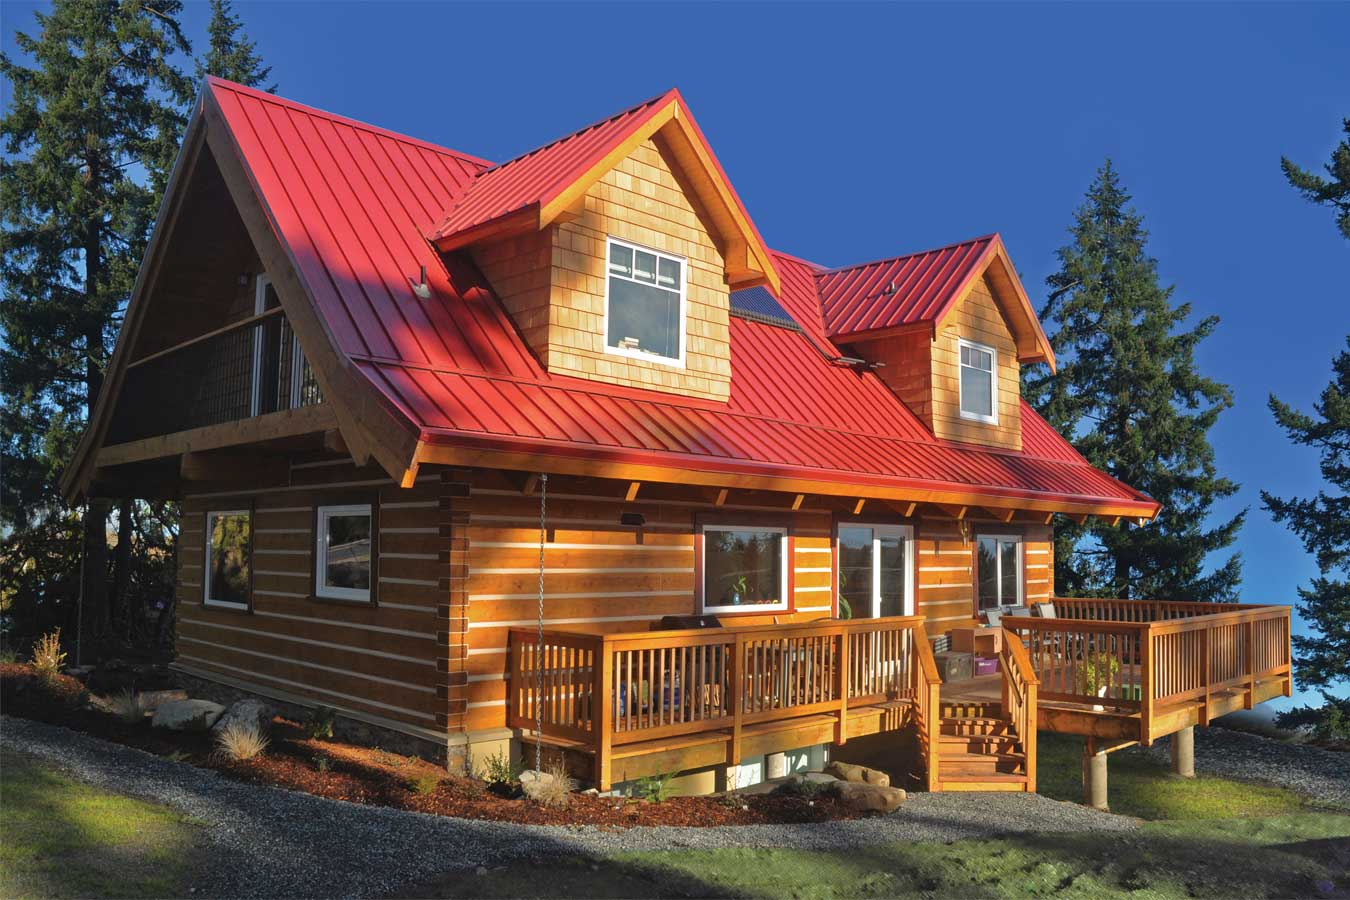 Model log home on Vancouver Island